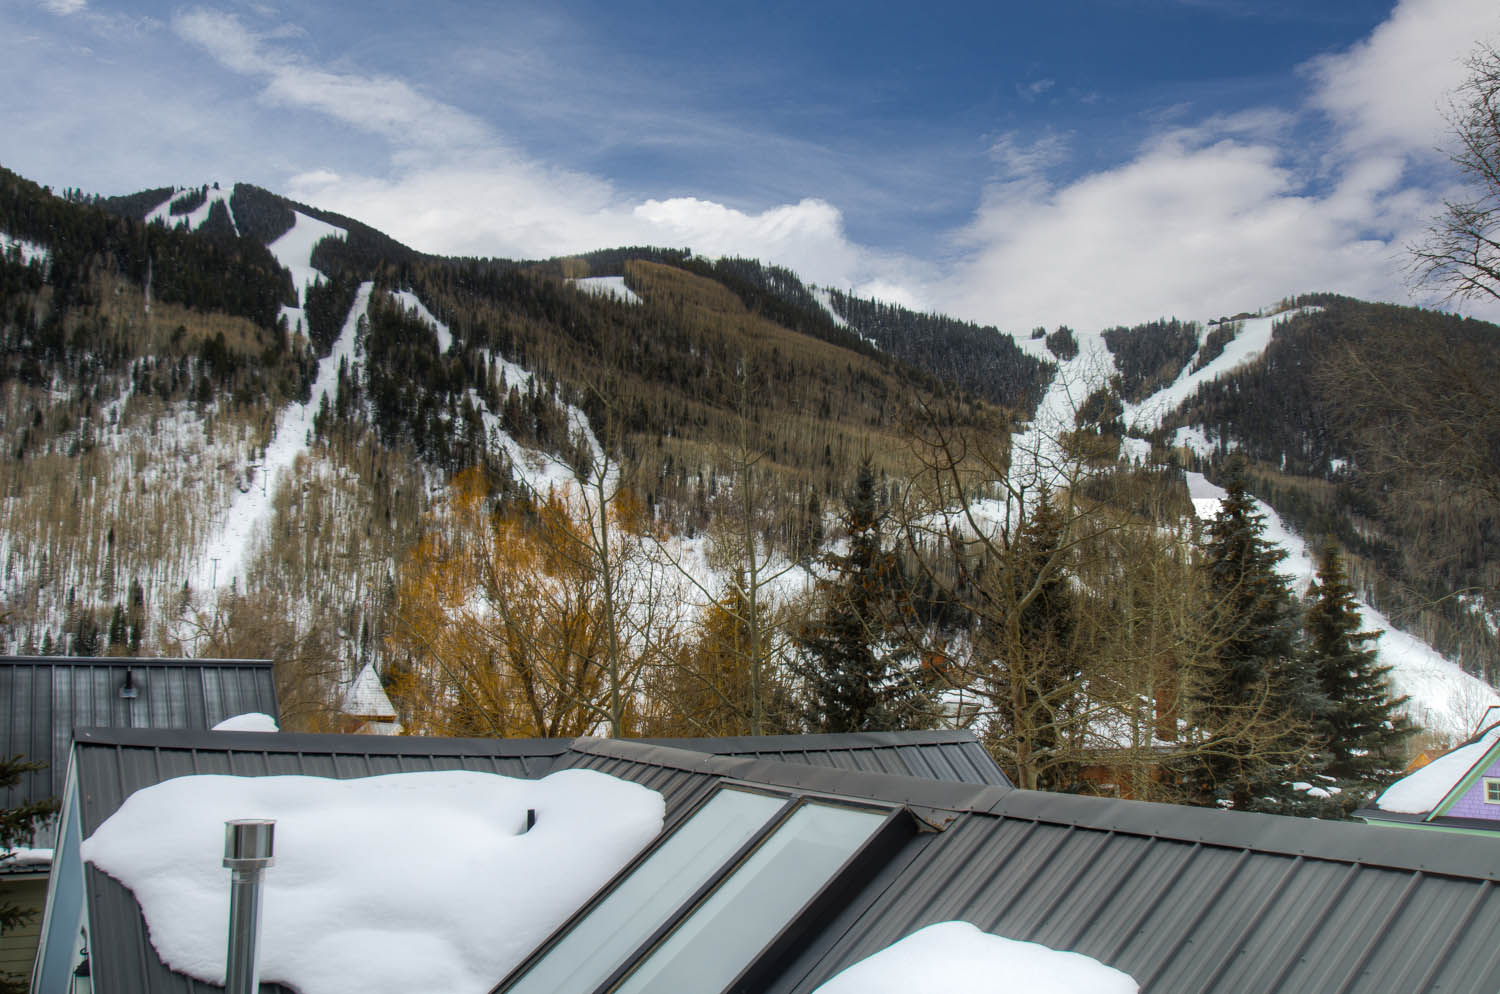 Views of Rooftops and Ski Slopes near Vacation Home in Telluride